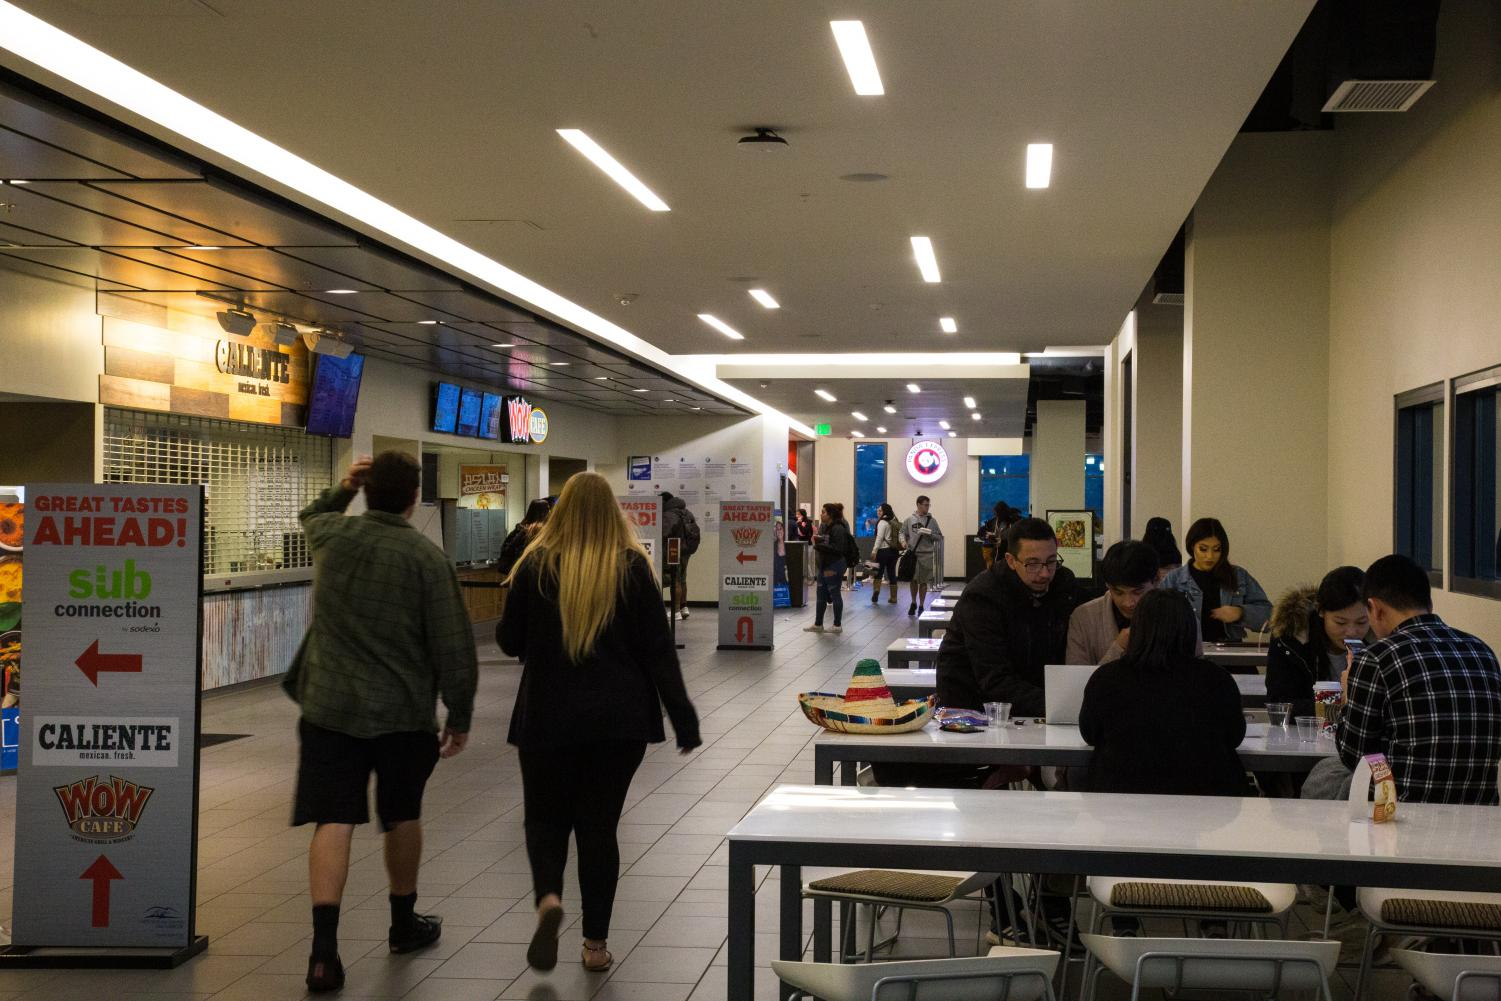 The USU Dining Hall currently offers four eateries